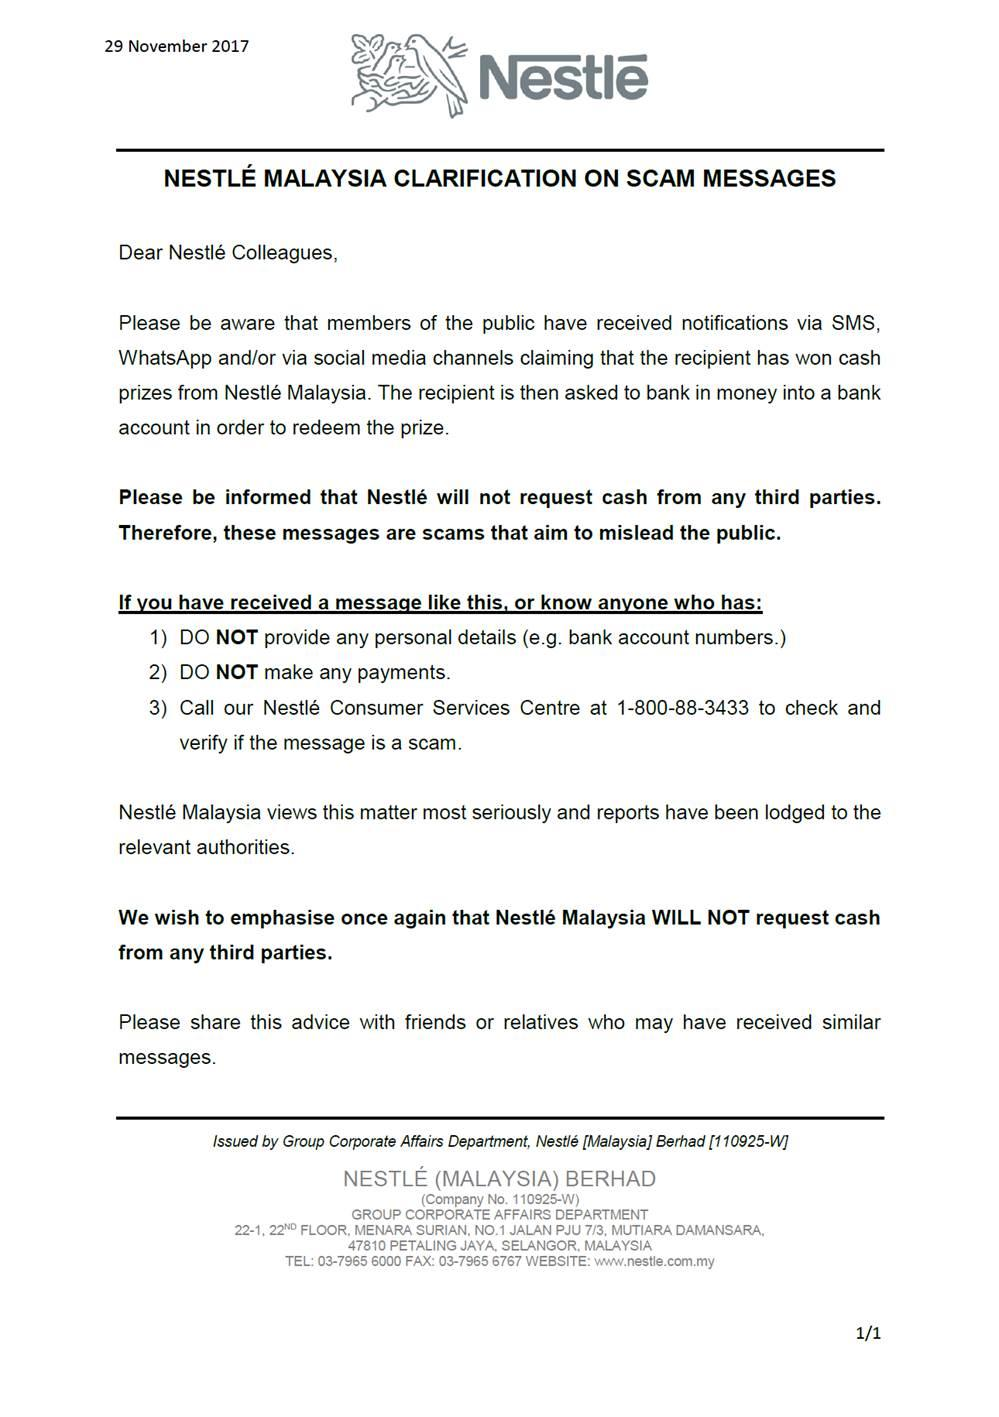 Malaysia Nestle Retirees: Nestlé Malaysia Clarification on Scam Messages